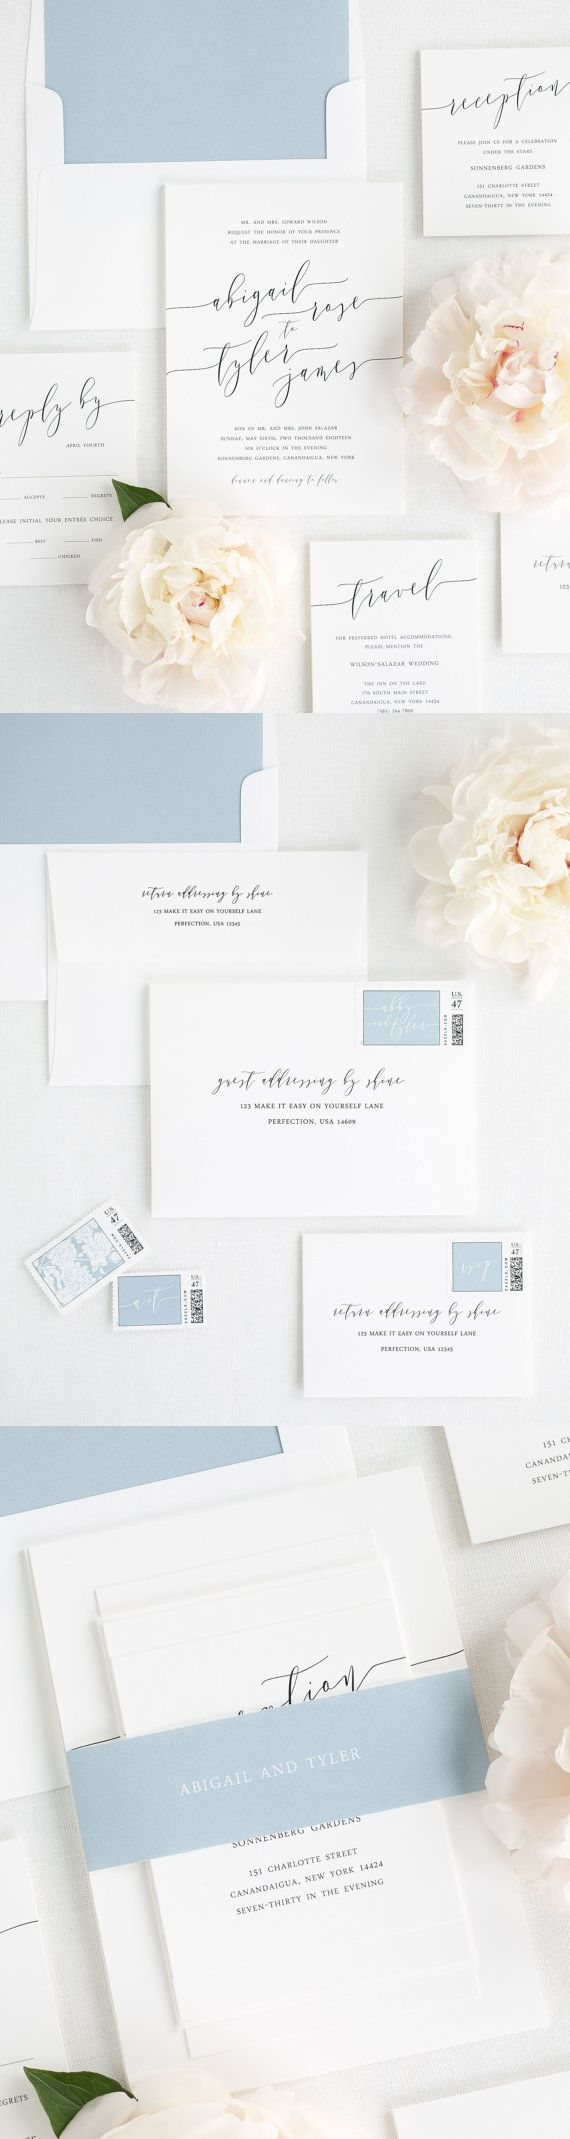 Elegant and timeless wedding invitations 309 best